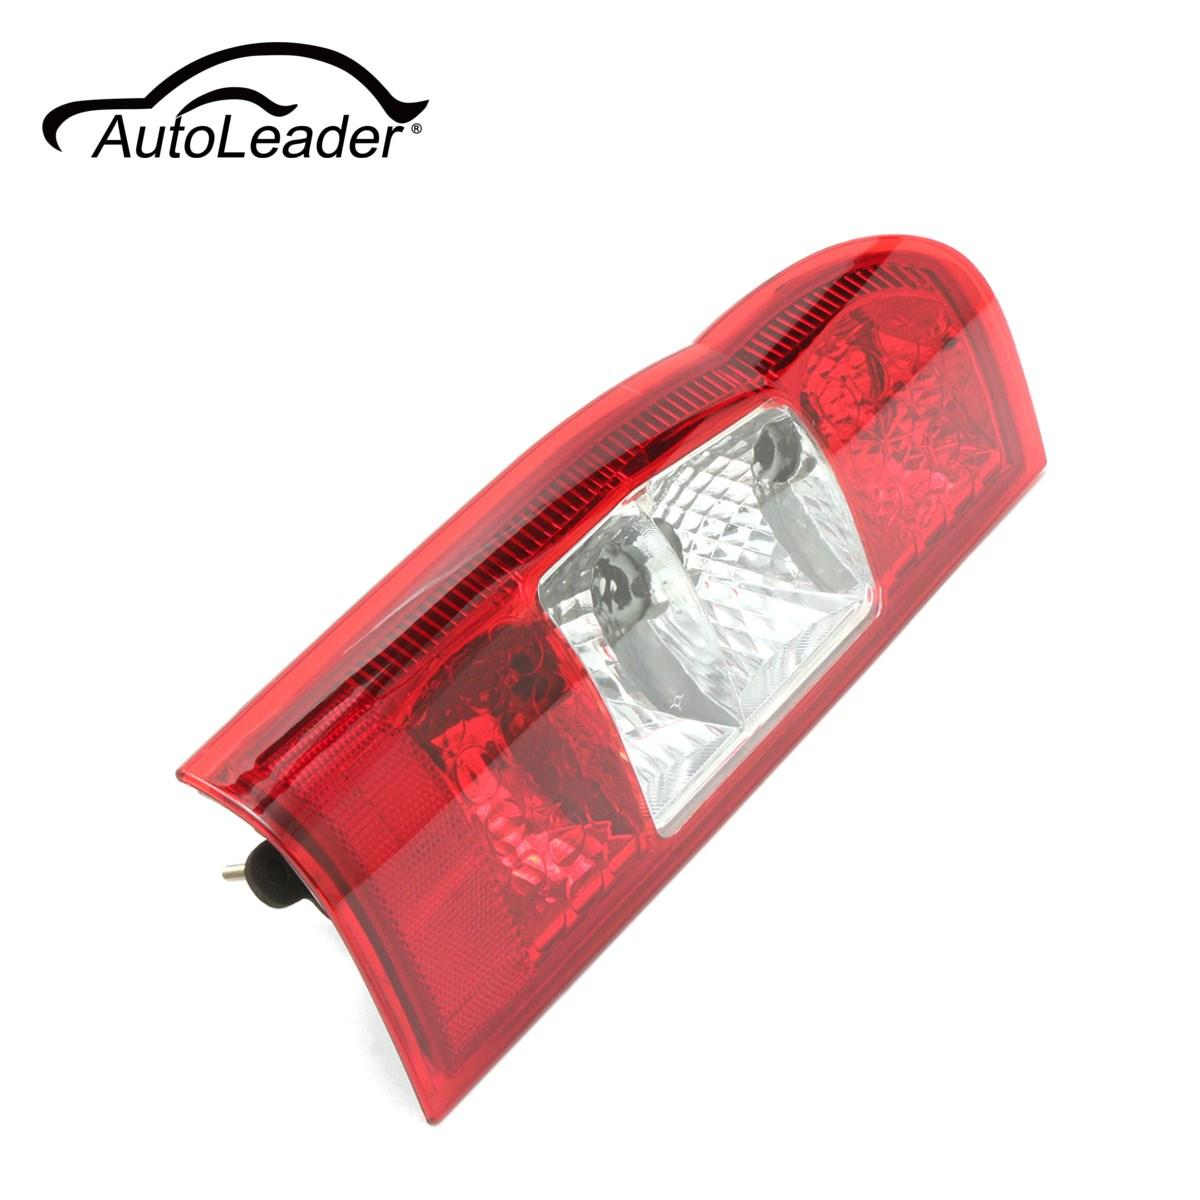 Transit Parts Transit MK7 Right Back Rear Tail Light Lens Lamp Drivers Side Van Bus